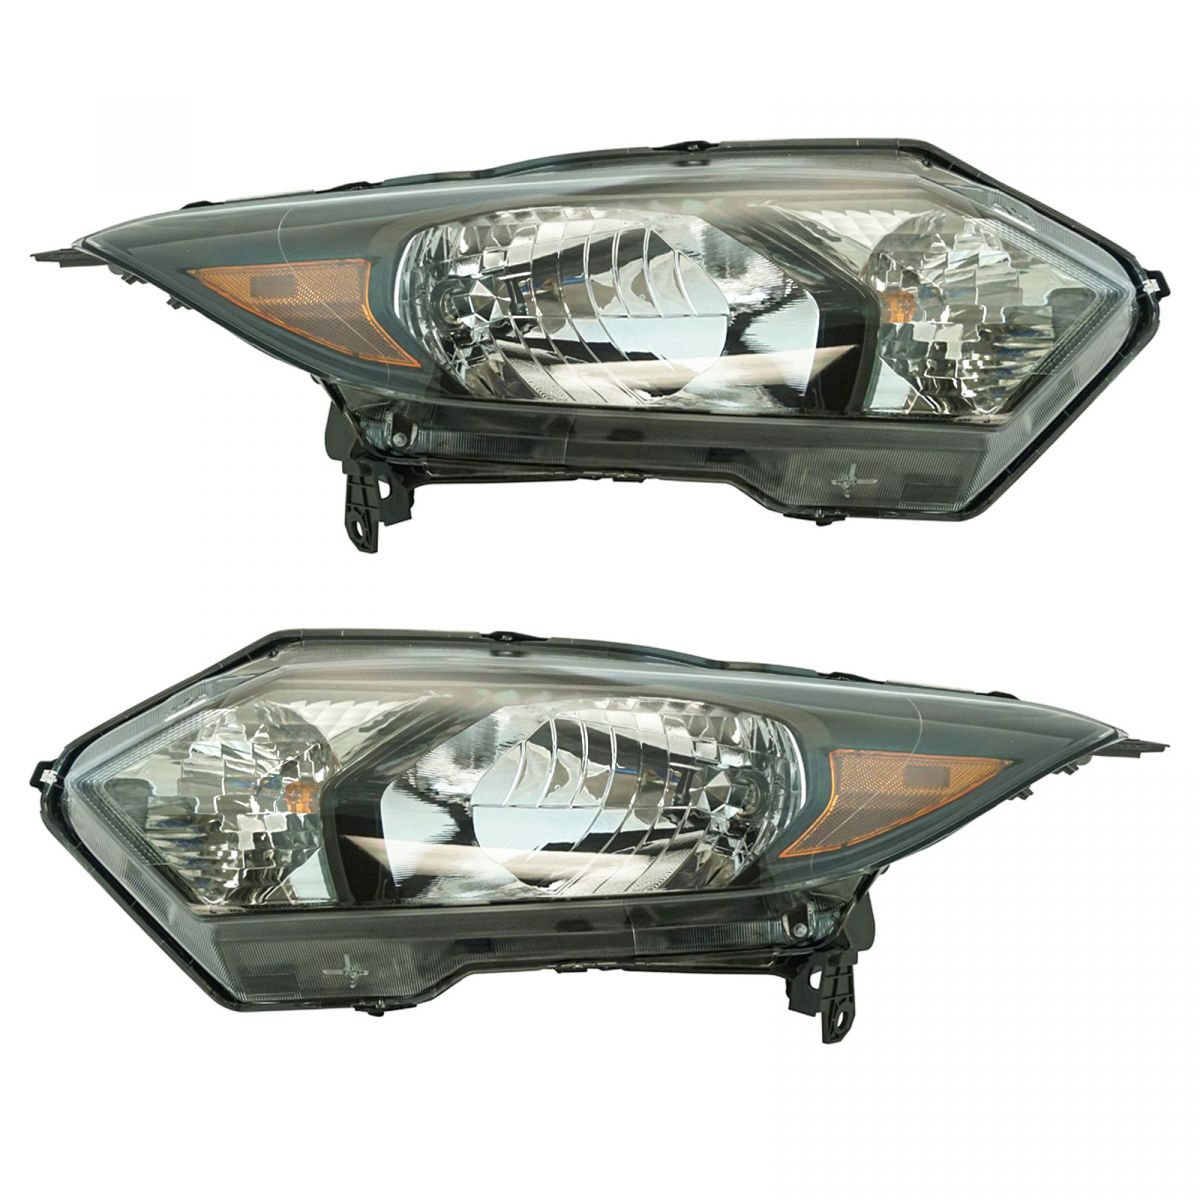 Halogen Headlight Lamp Assembly Lh Rh Set Of 2 Pair For